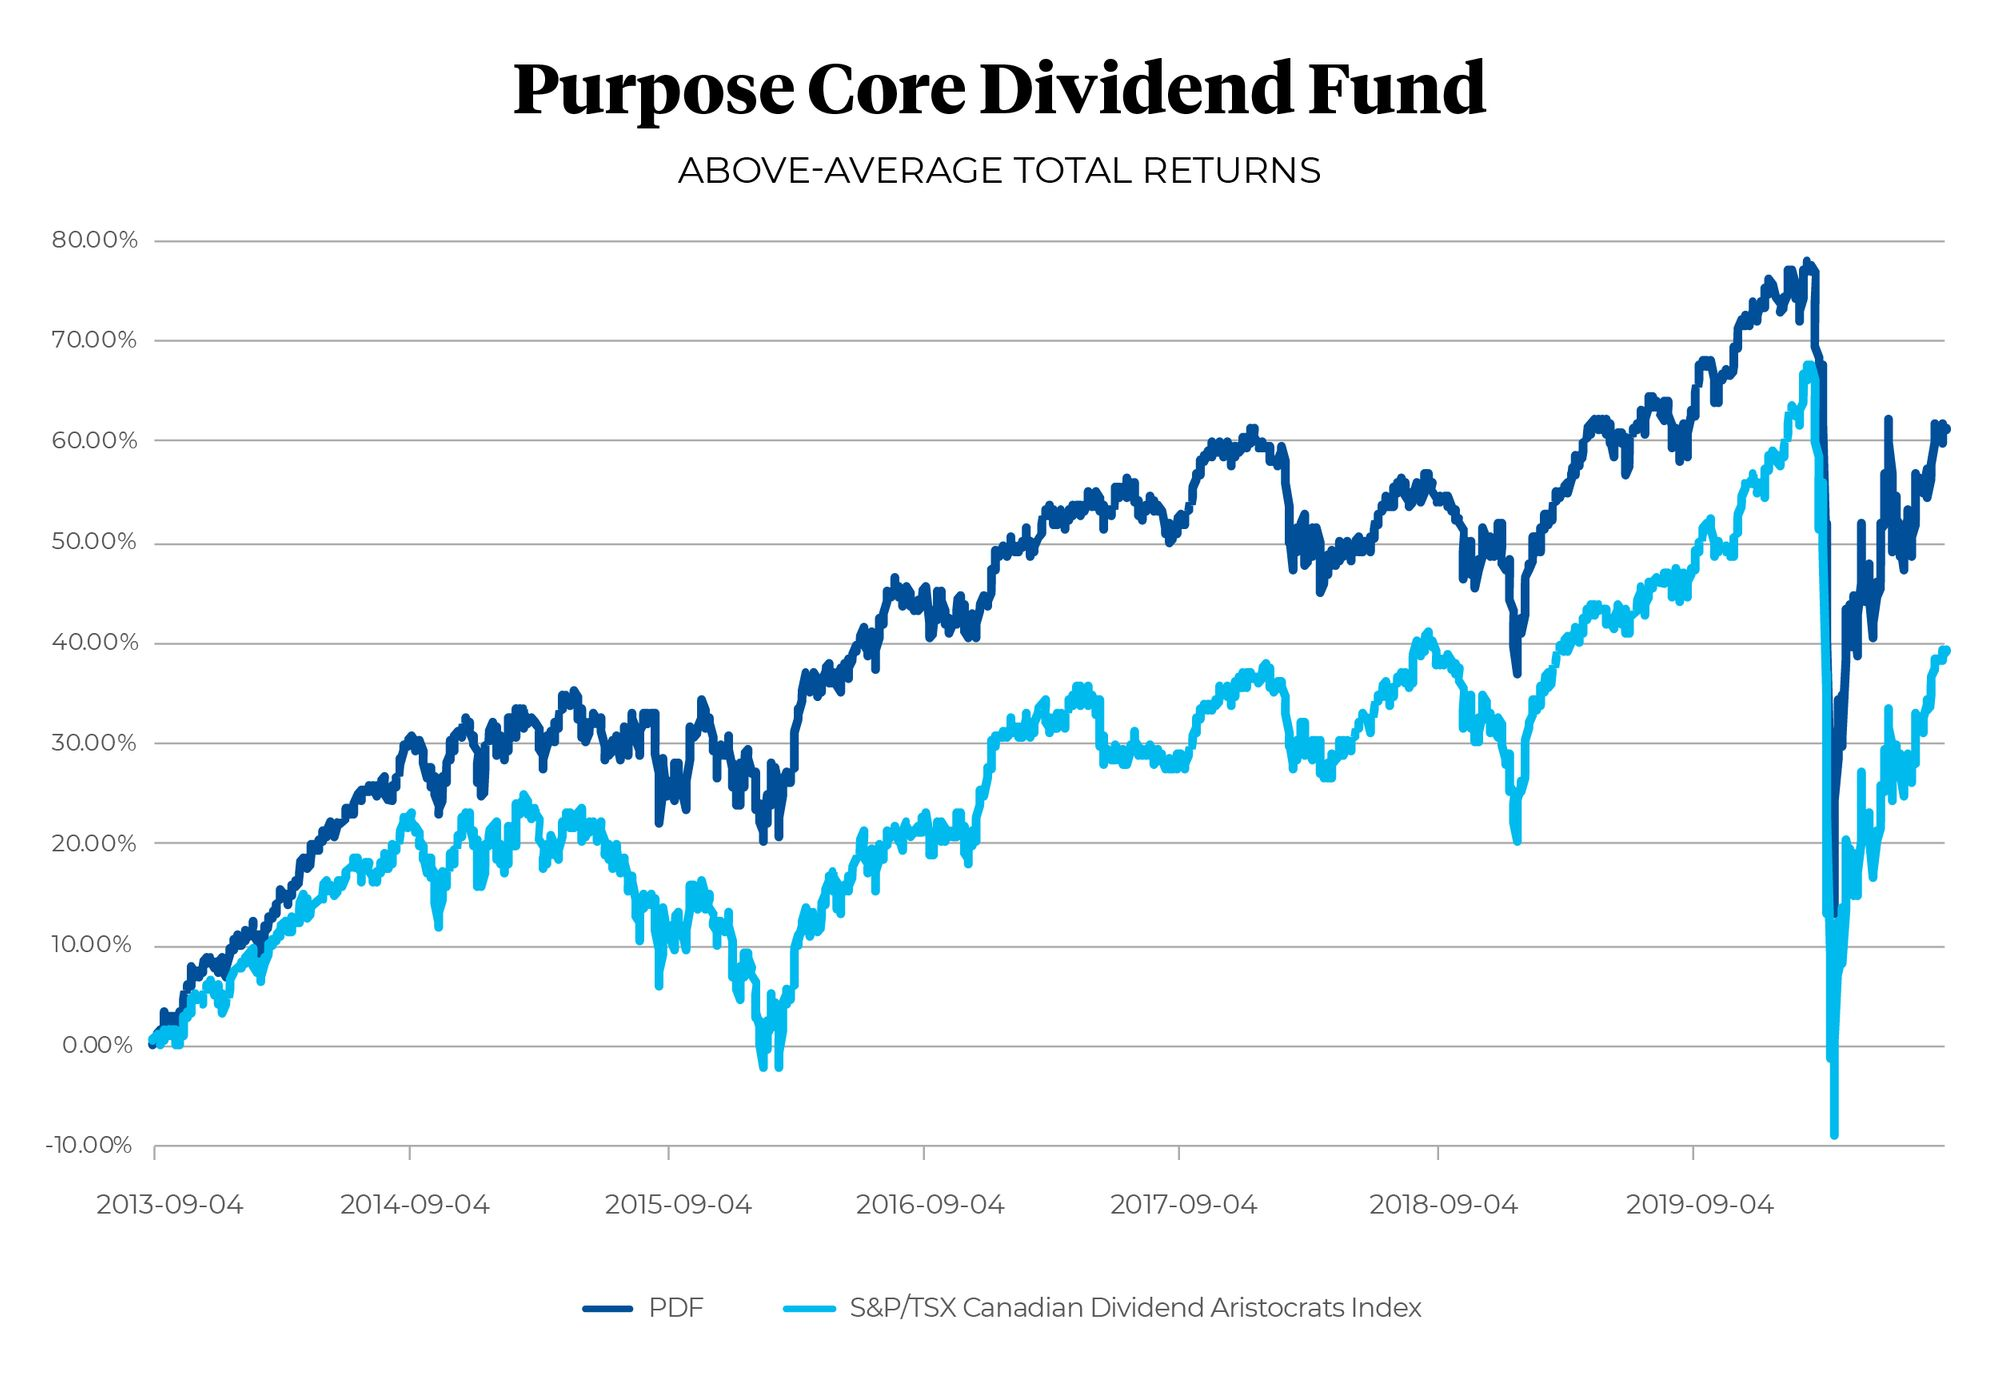 Purpose Core Dividend Fund chart above-average total returns versus S&P/TSX Canadian Dividend Aristocrats Index